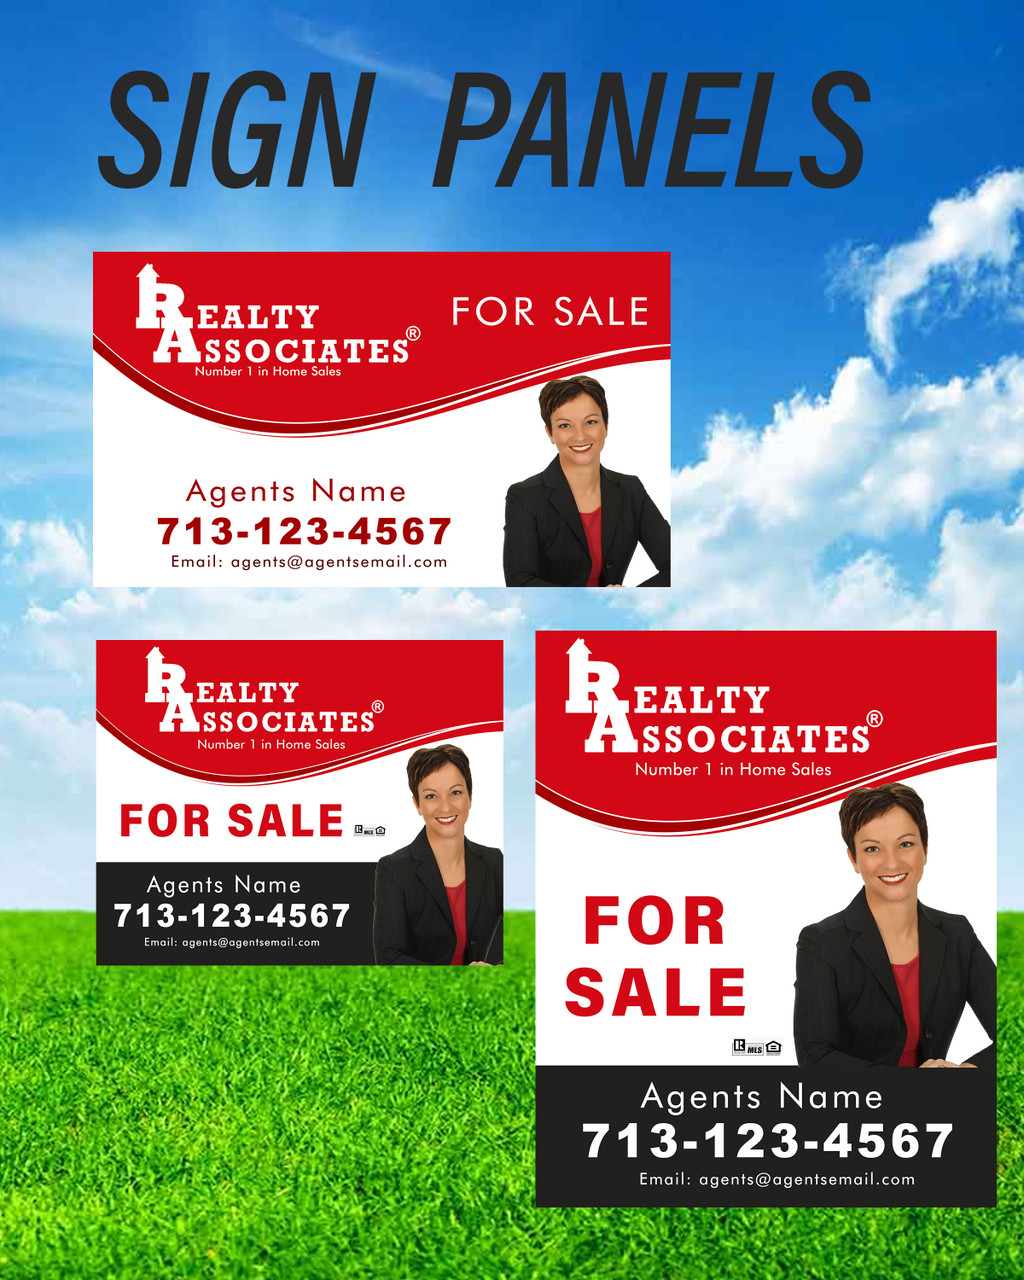 Realty Associates Sign Panels